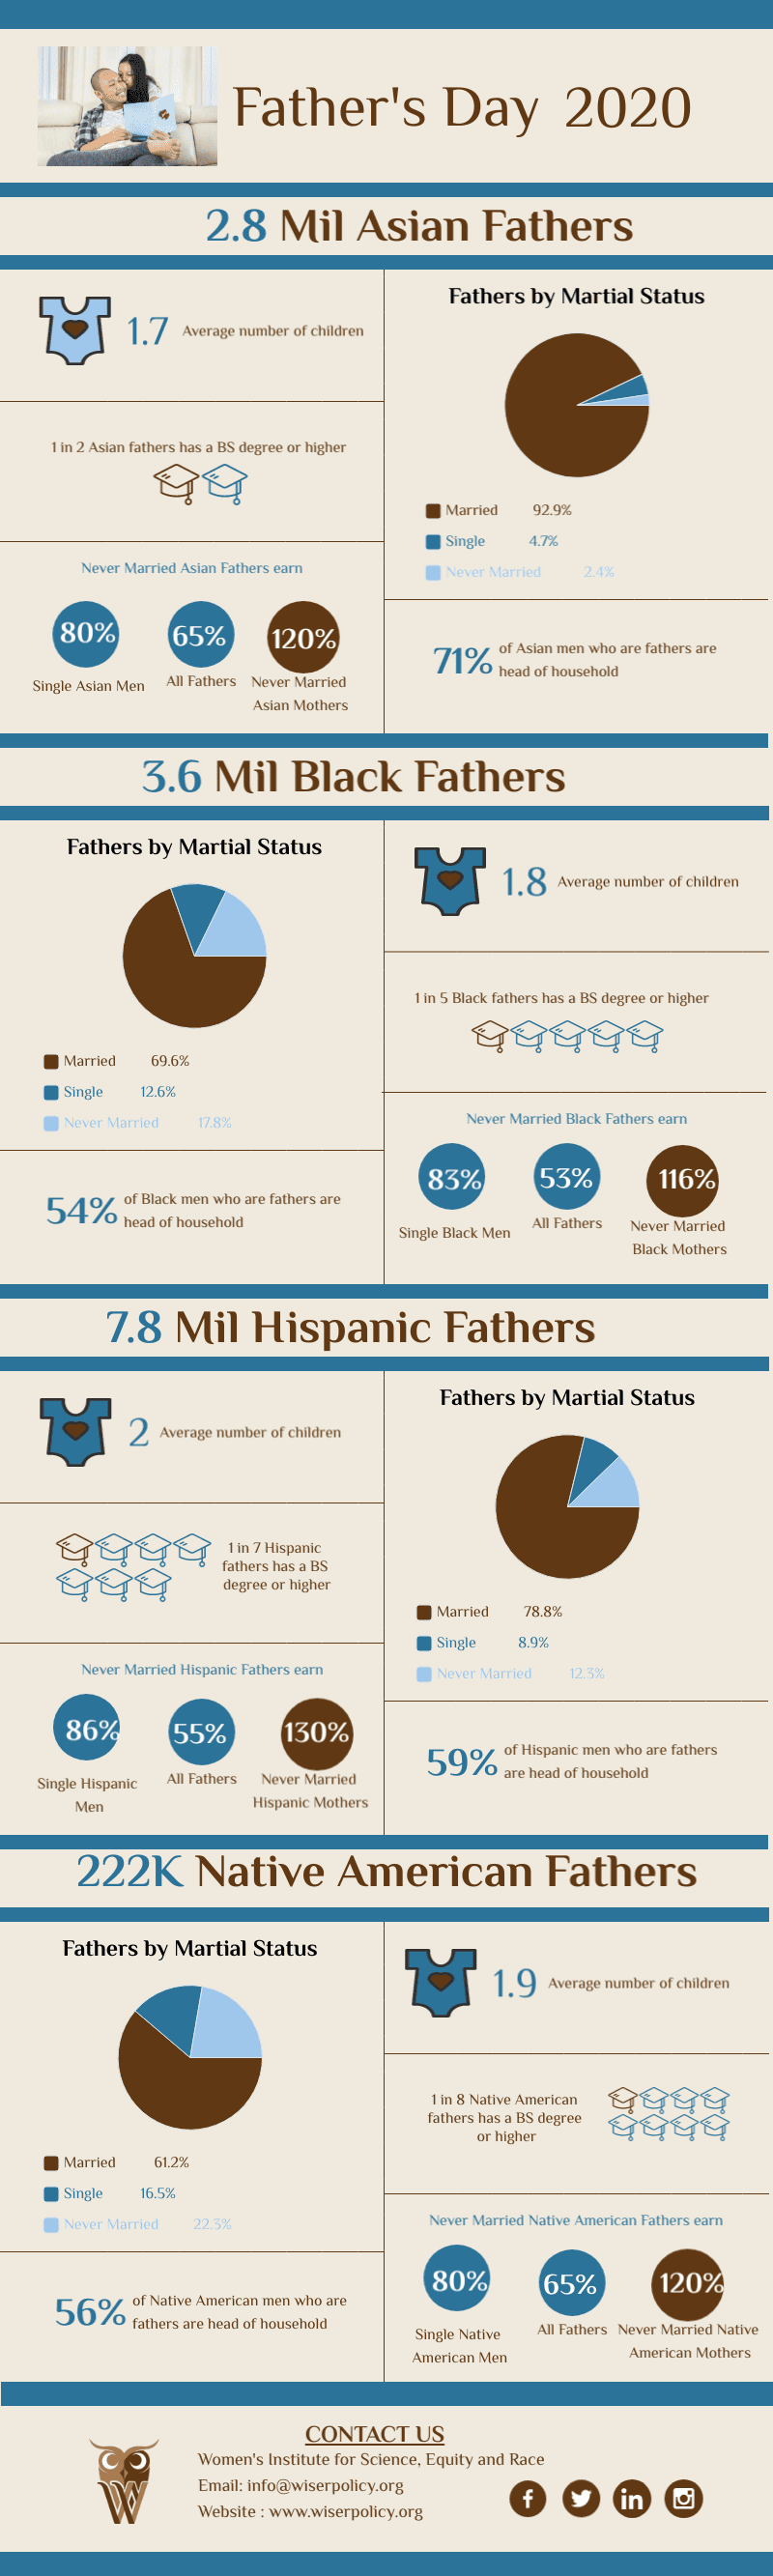 Father's Day 2020 | US Fathers Disaggregated Data | WISER Policy